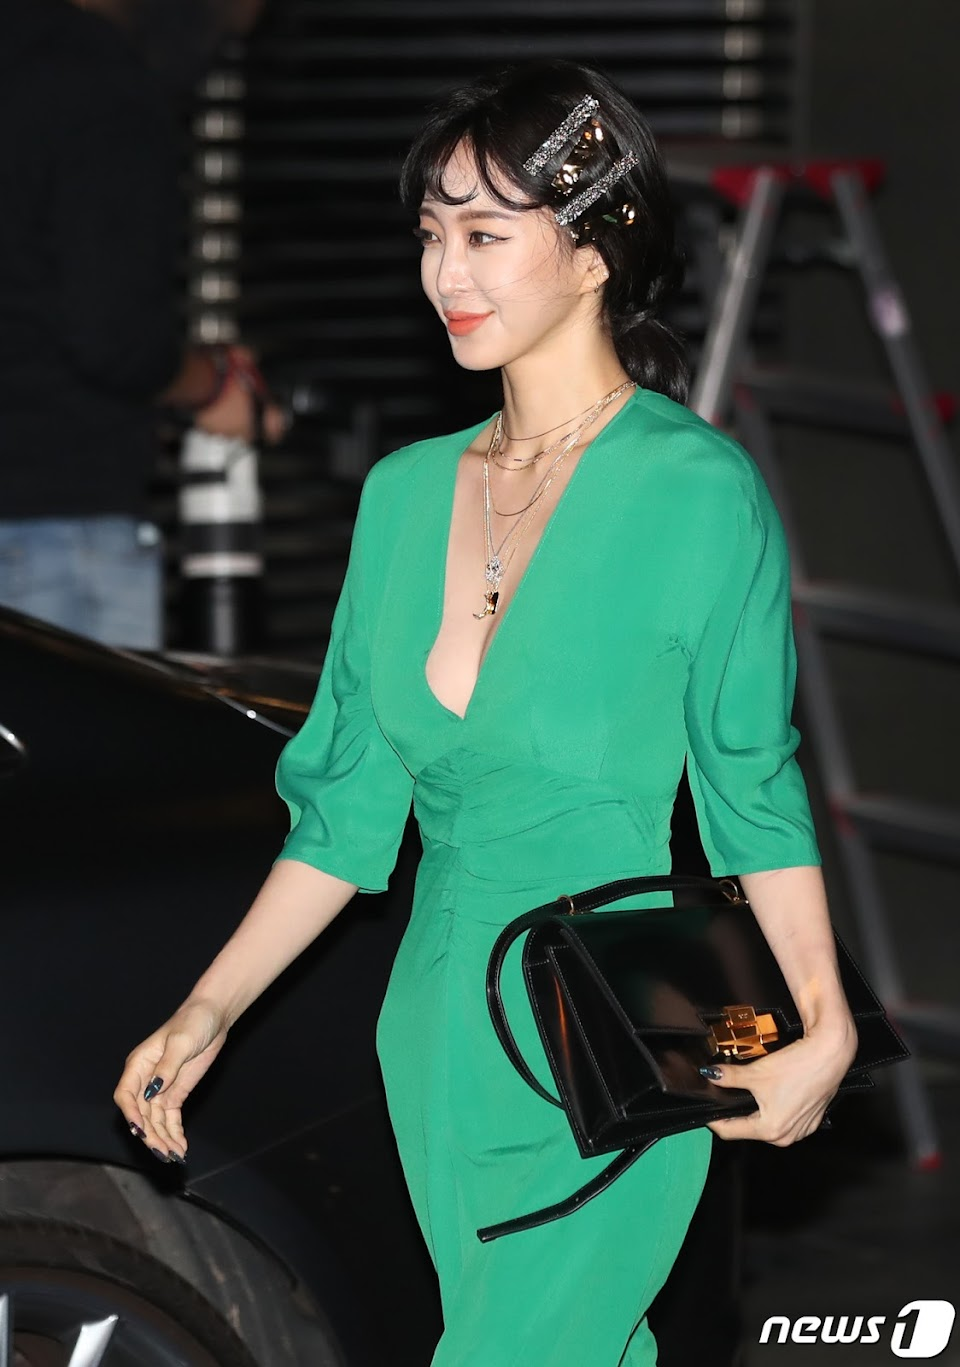 han ye seul green dress 7